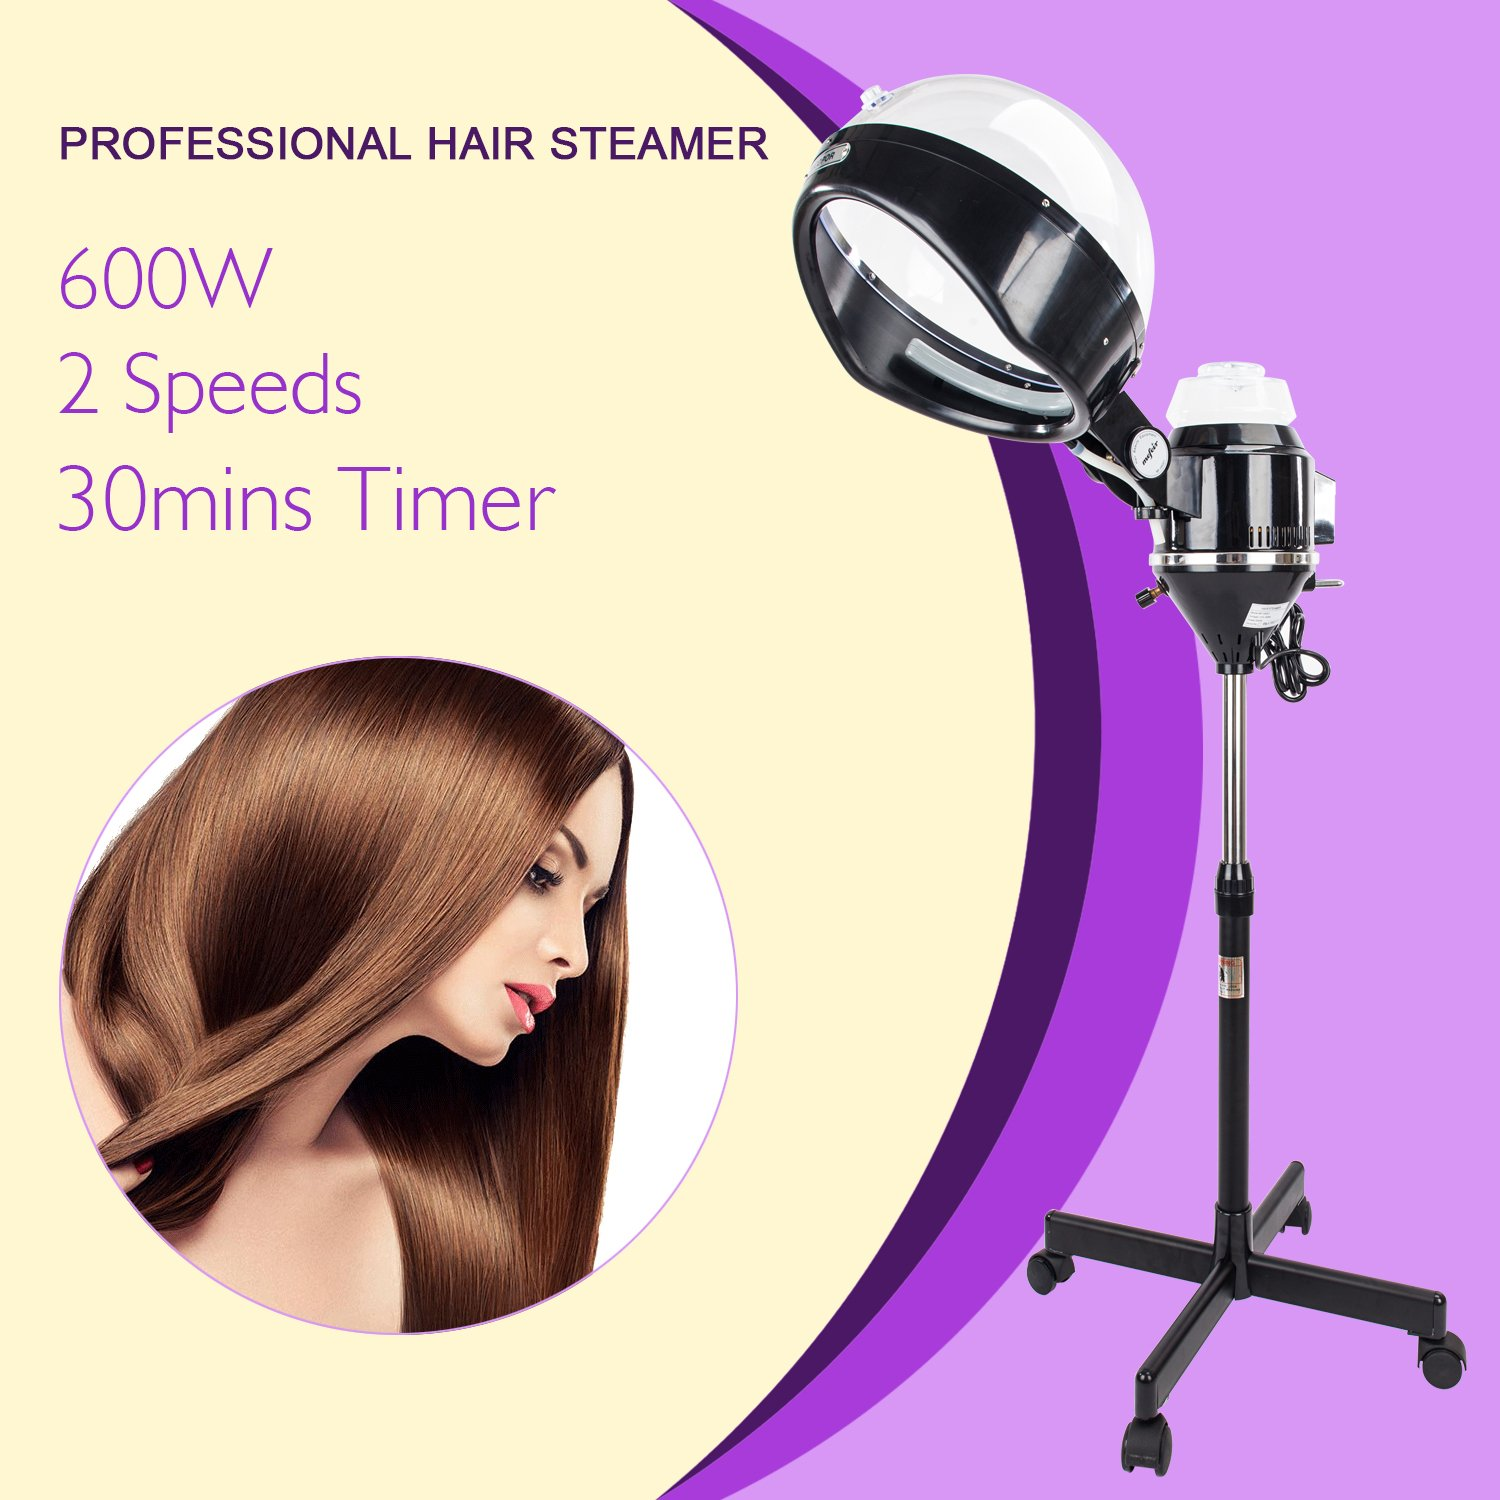 Mefeir Upgraded 600W Hair Steamer Machine with Hood,Adjustable Timer Rolling Floor Iron Stand Base,Portable Salon Color Process for Natural Hair Beauty Spa Equipment